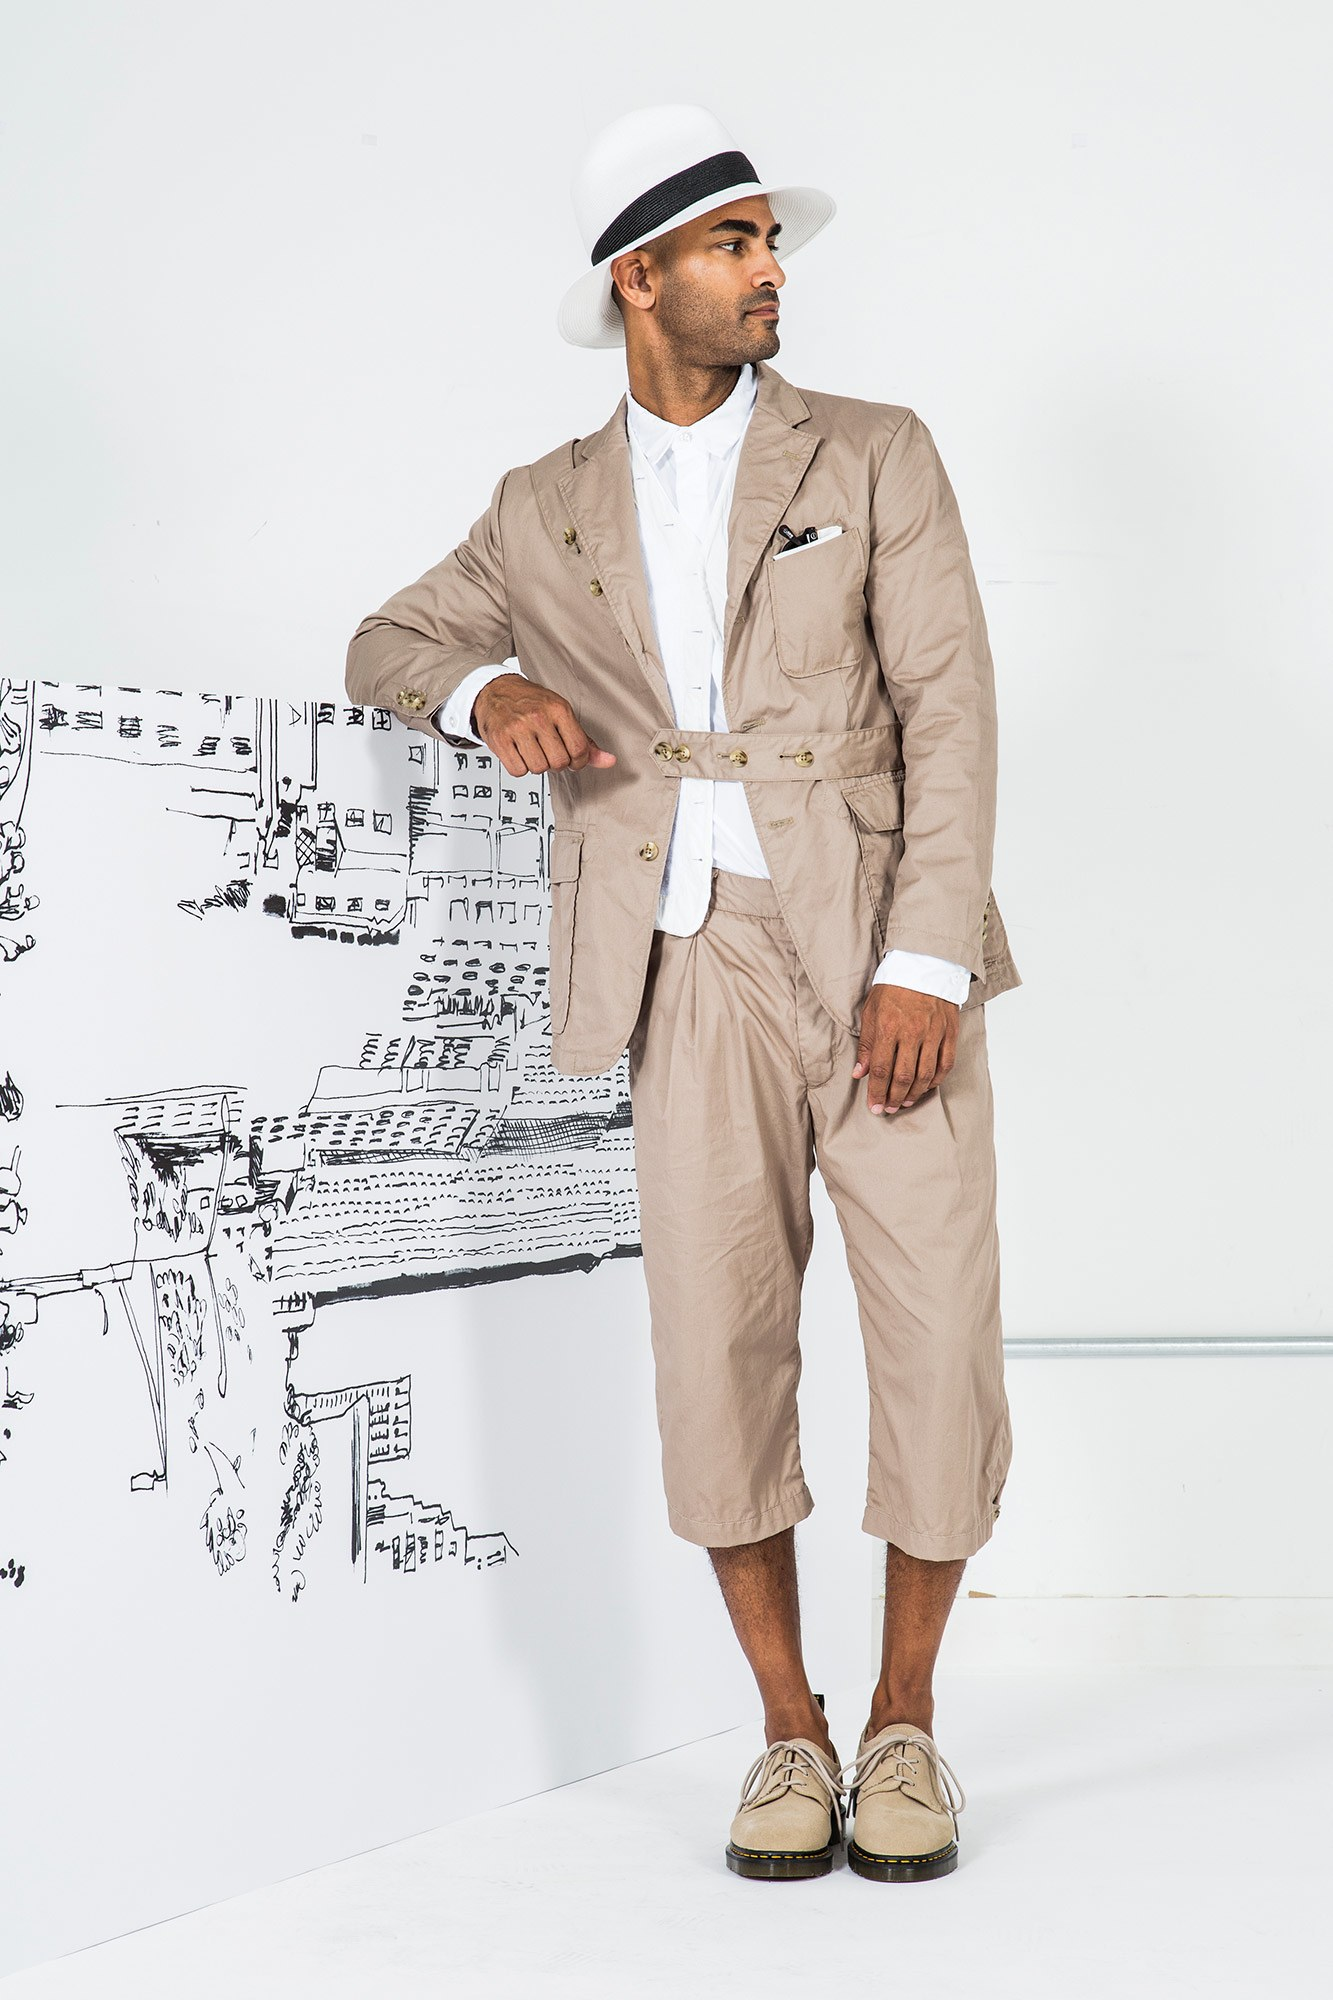 El QUaG's photos in Engineered Garments SS 16